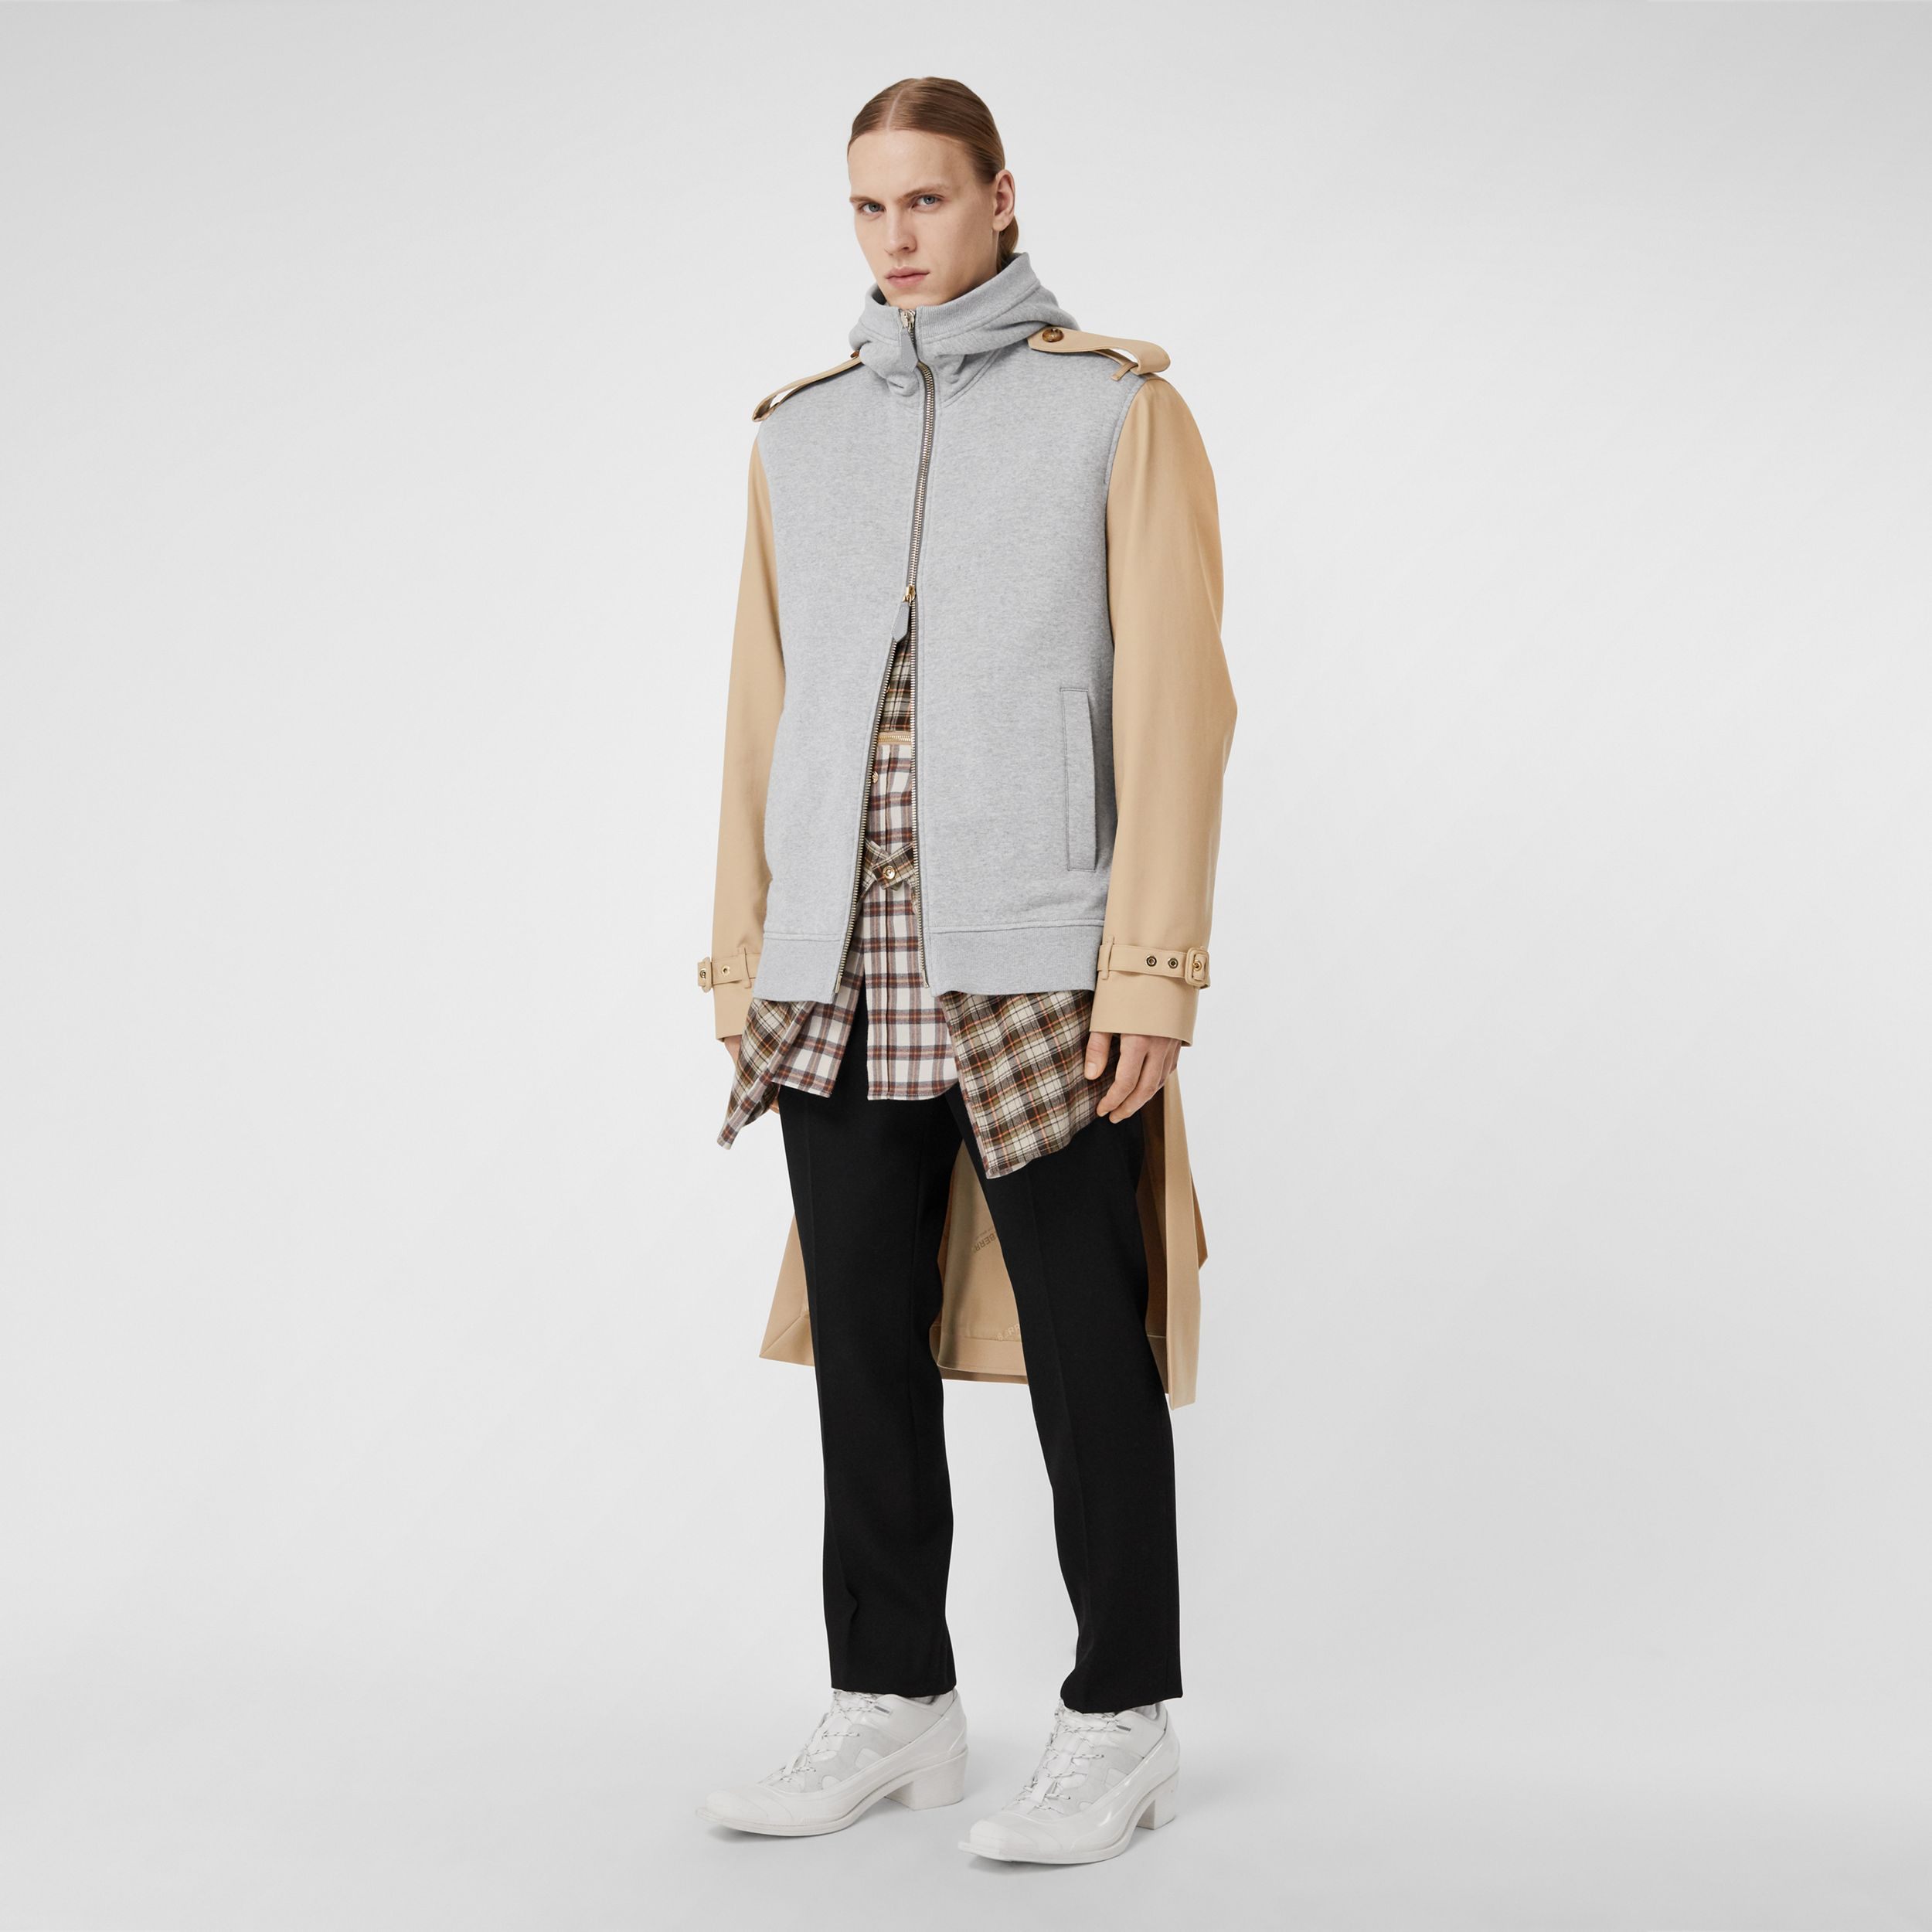 Cotton and Jersey Reconstructed Trench Coat in Soft Fawn | Burberry - 1